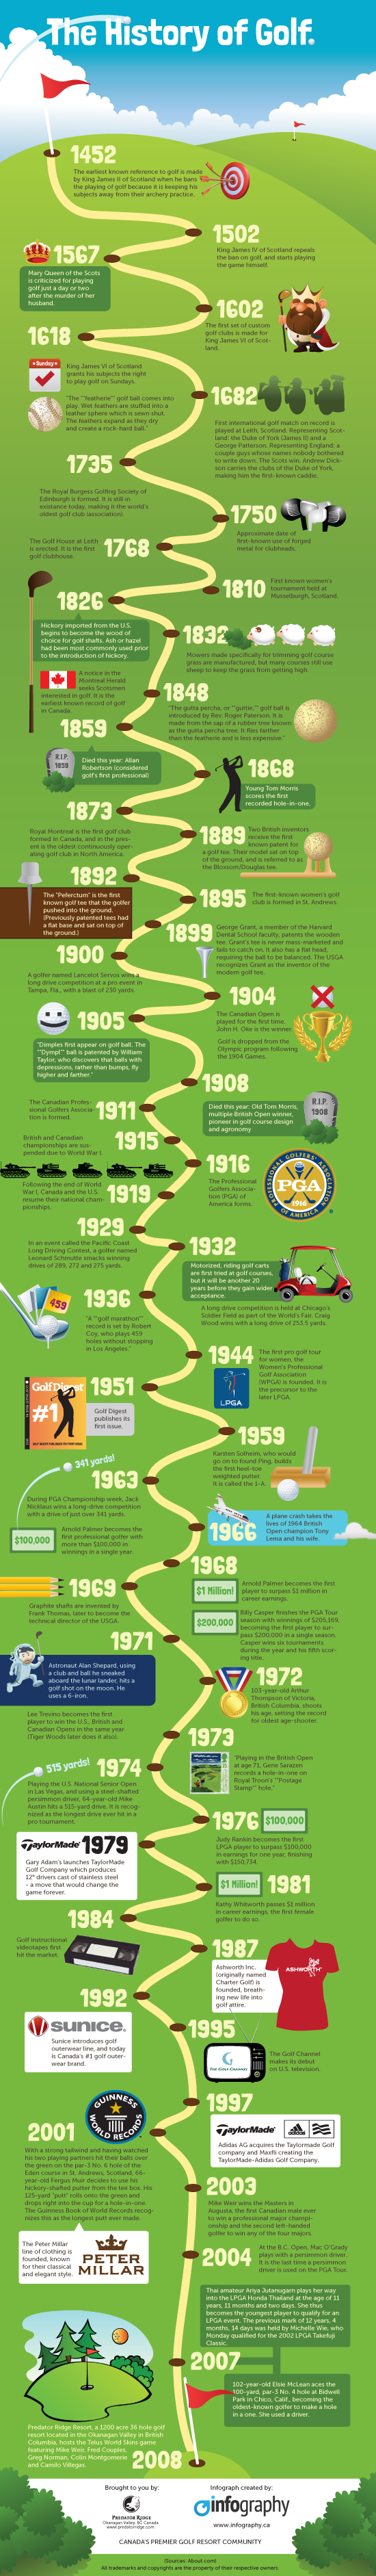 History-of-Golf-Infographic-550